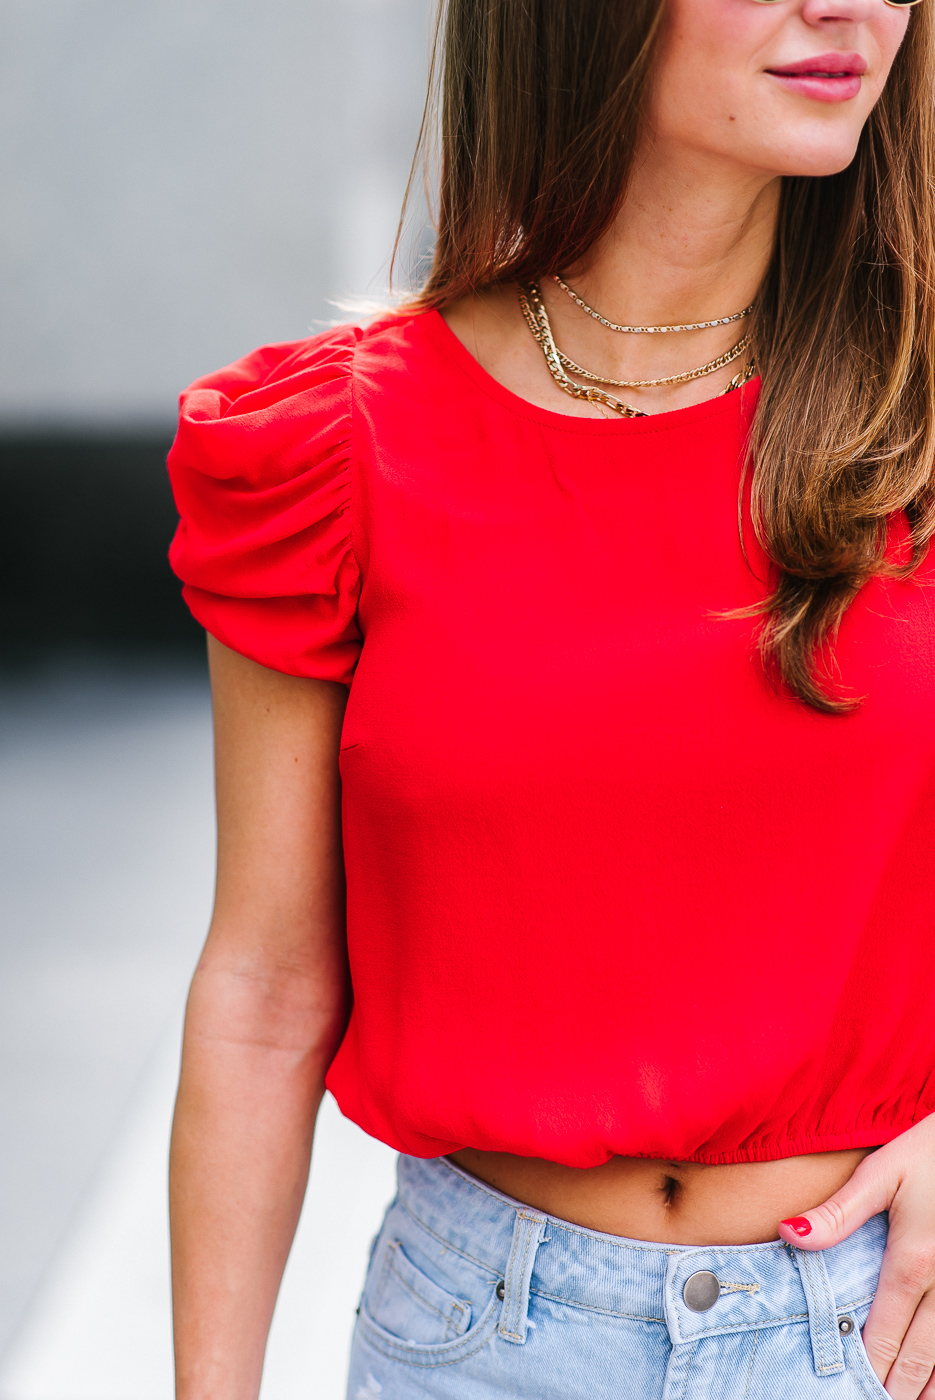 Fashion blogger wearing capped ruffle sleeves